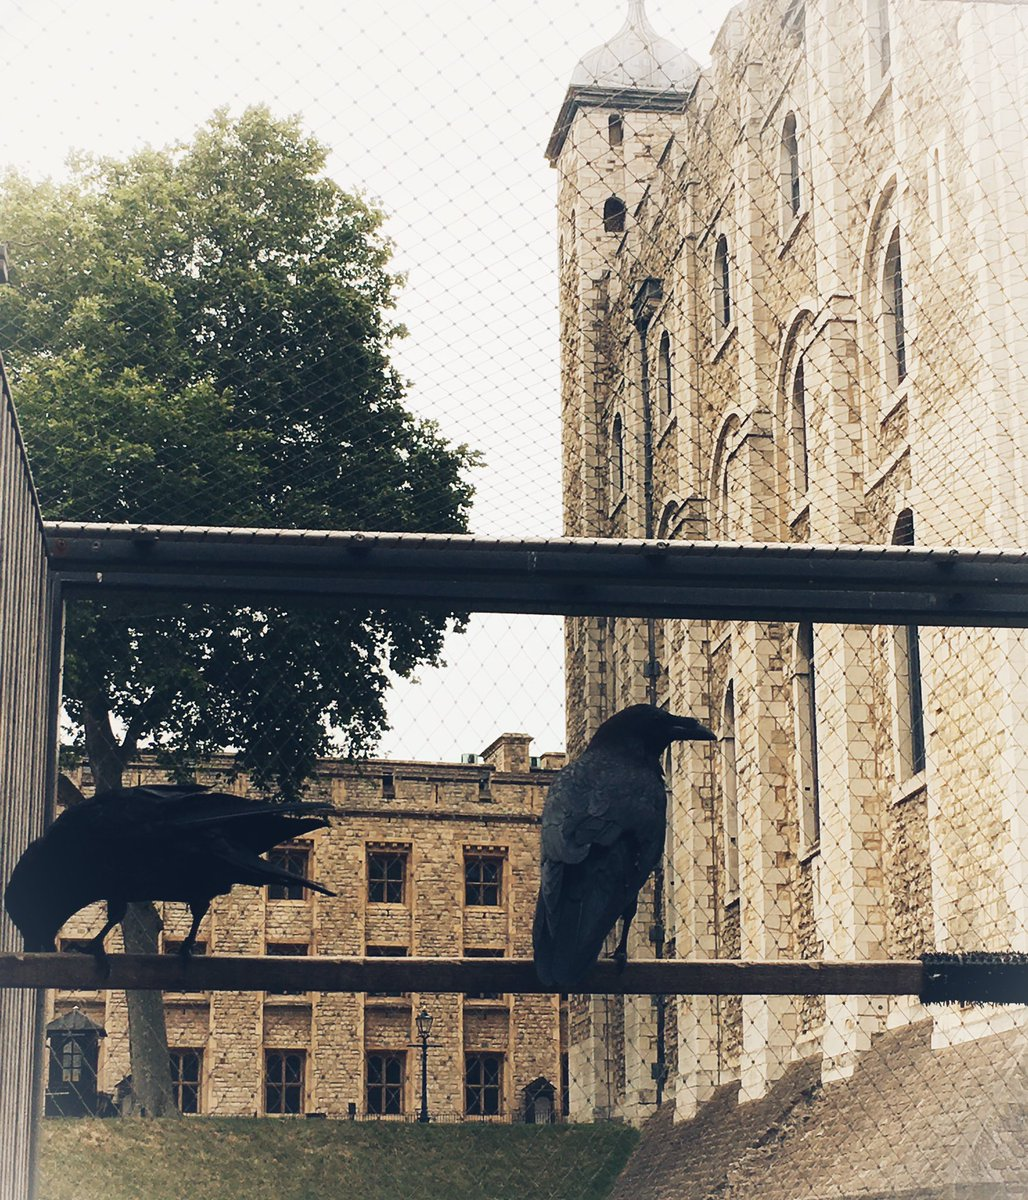 Yeoman Warder Shady Lane & I have just put the ravens to bed for the night at the Tower of London which means, I'm happy to say, that THE KINGDOM IS SAFE.